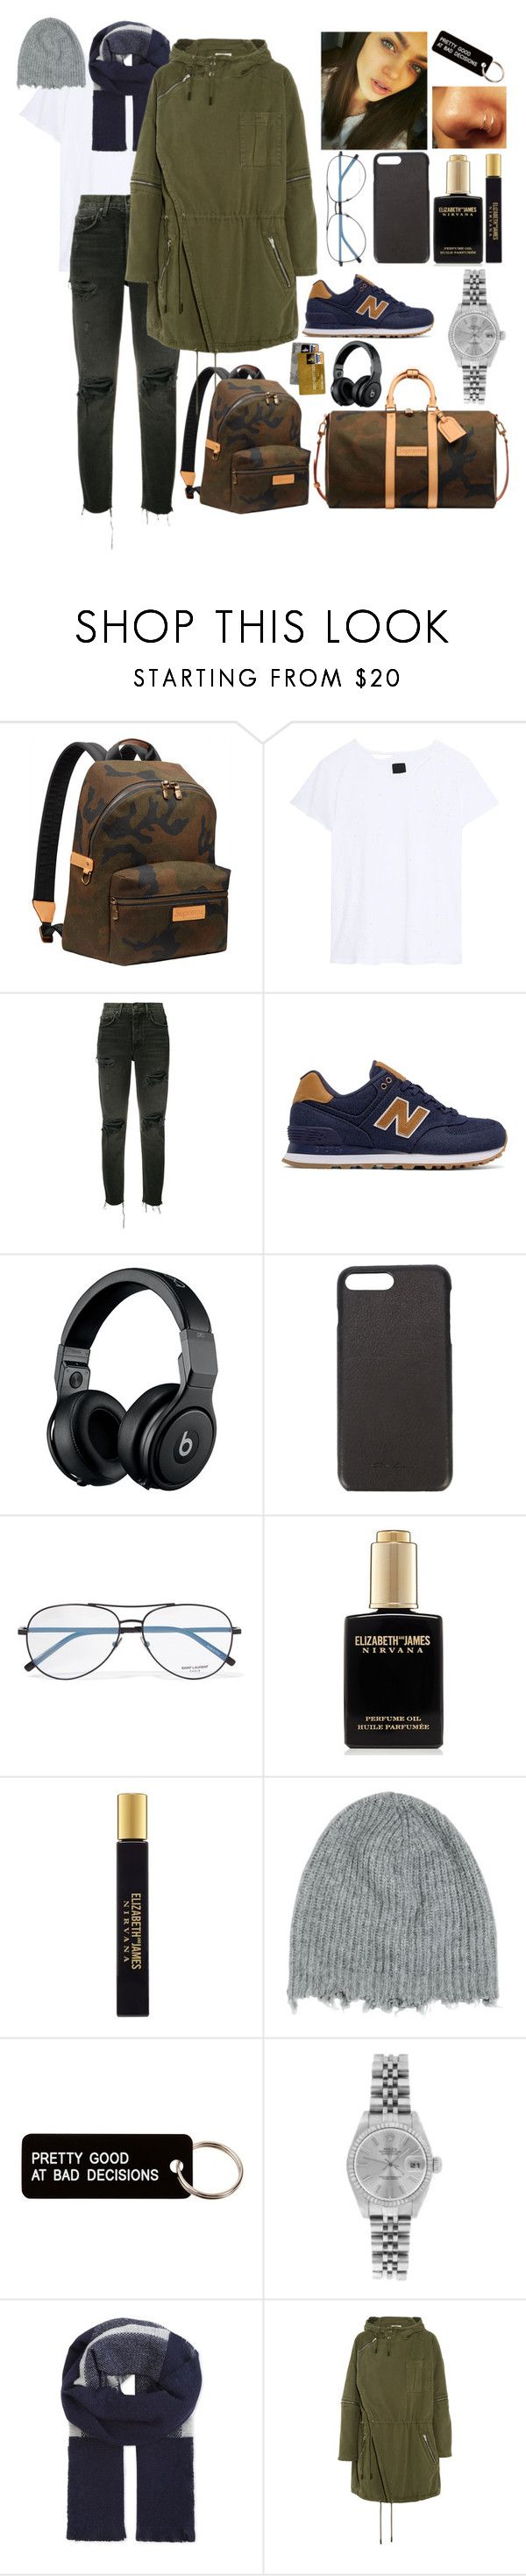 """Untitled #1001"" by sabri-belieber ❤ liked on Polyvore featuring Louis Vuitton, RtA, GRLFRND, New Balance, Beats by Dr. Dre, Rick Owens, Yves Saint Laurent, Elizabeth and James, MSGM and Various Projects"